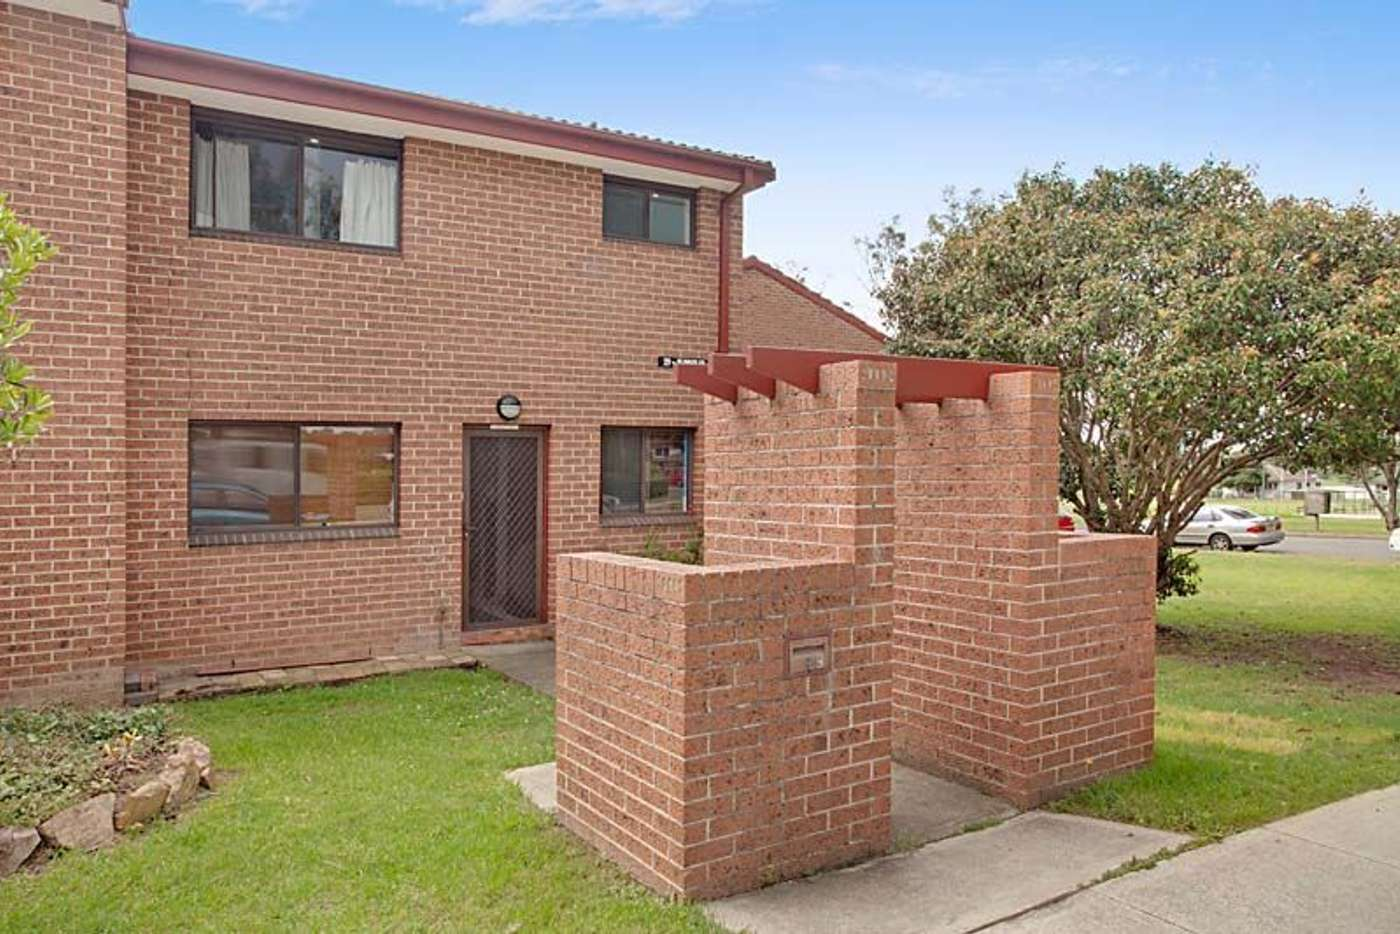 Main view of Homely unit listing, 8/29 First St, Kingswood NSW 2747